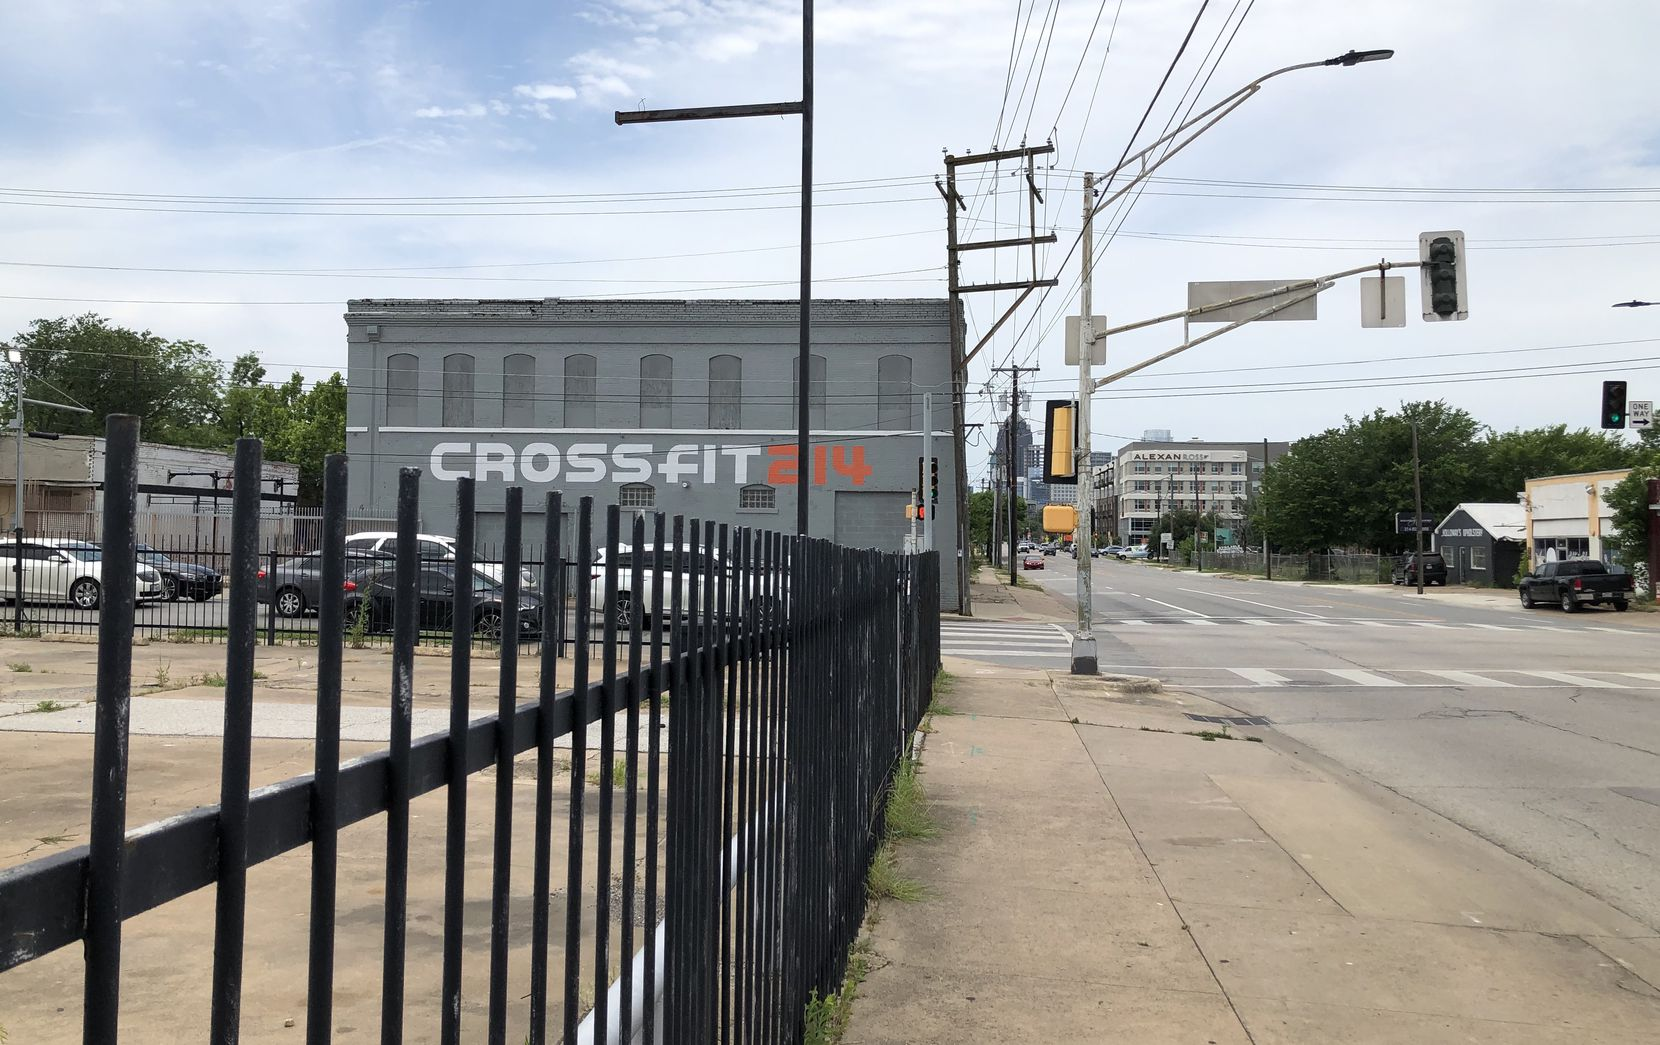 Developer Pollack Shores plans to build at the corner of Ross and Peak just east of downtown Dallas.